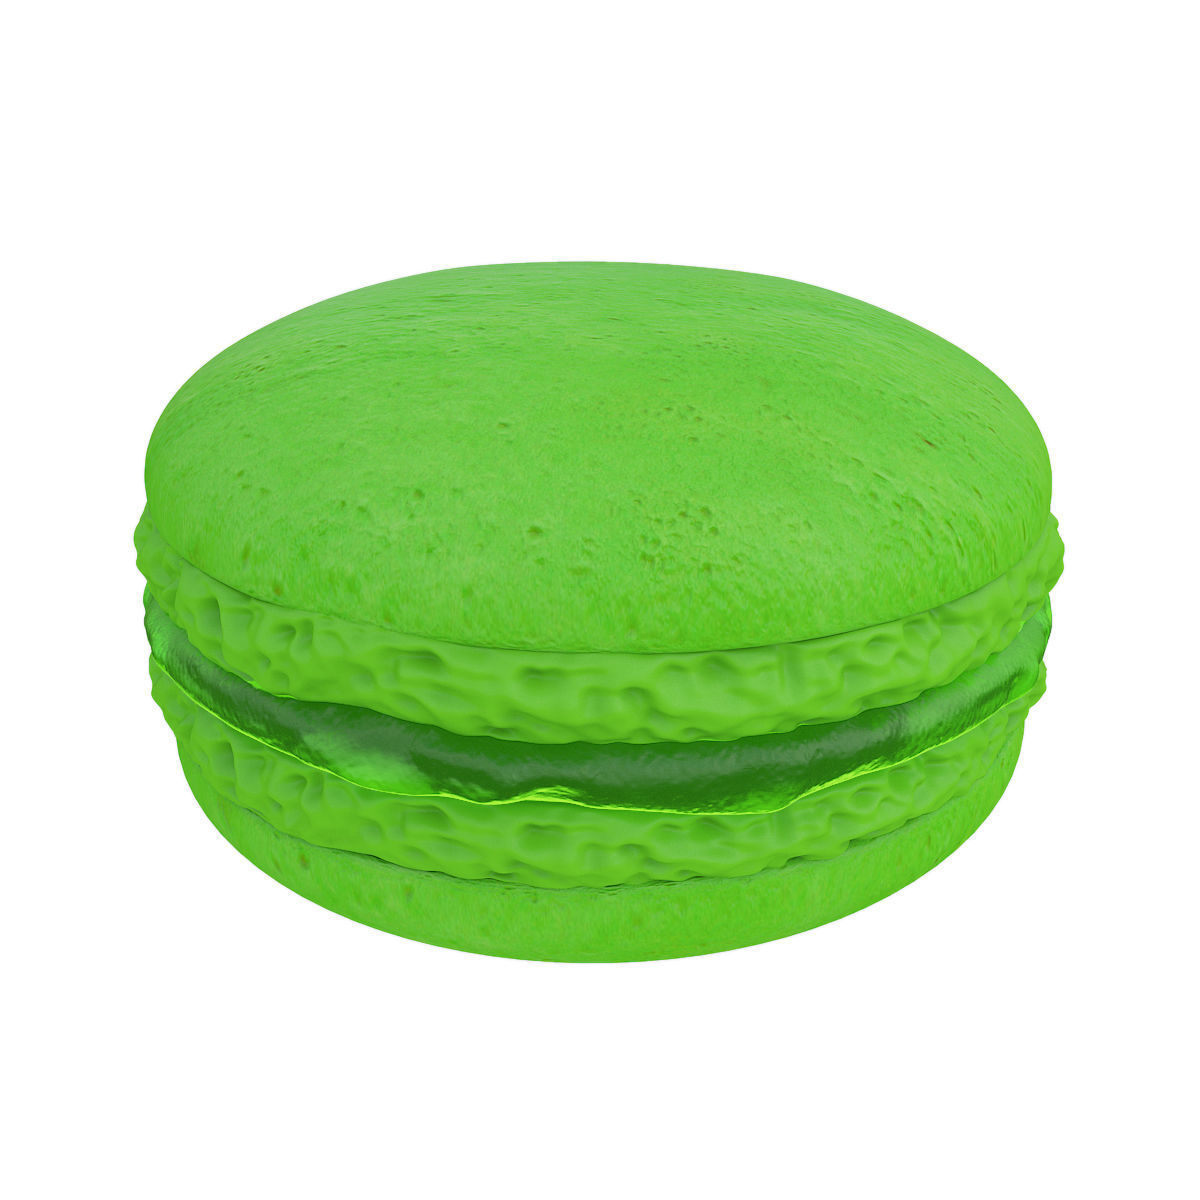 Green macaroon with jam